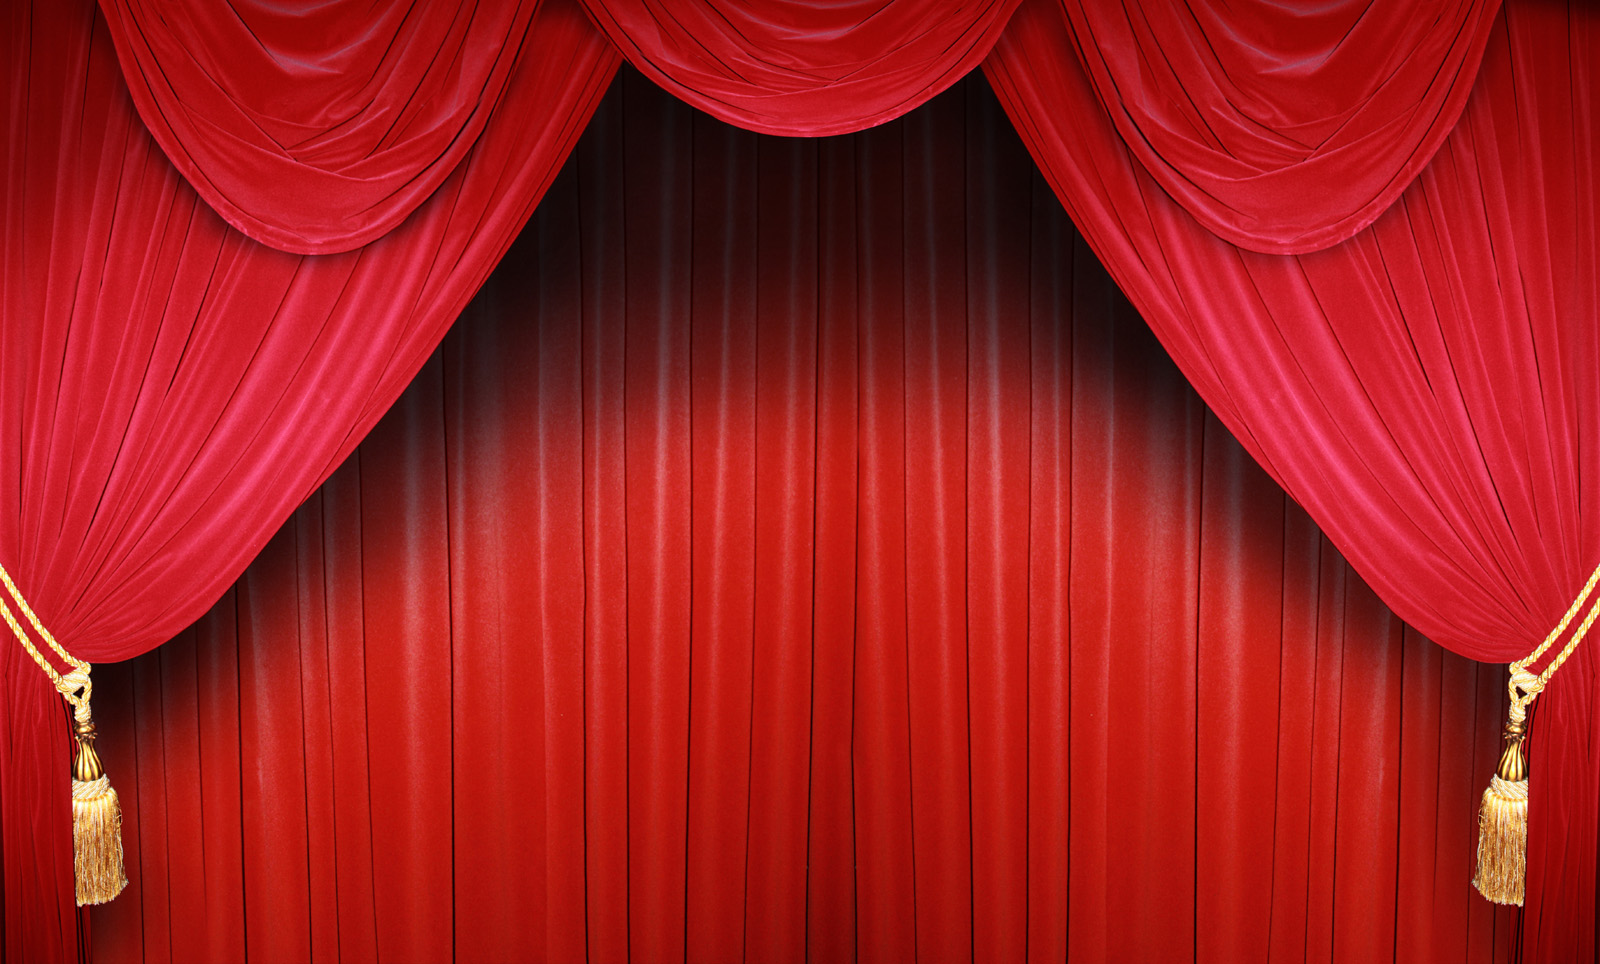 High-resolution red curtain 10464 - Stage venue - Others